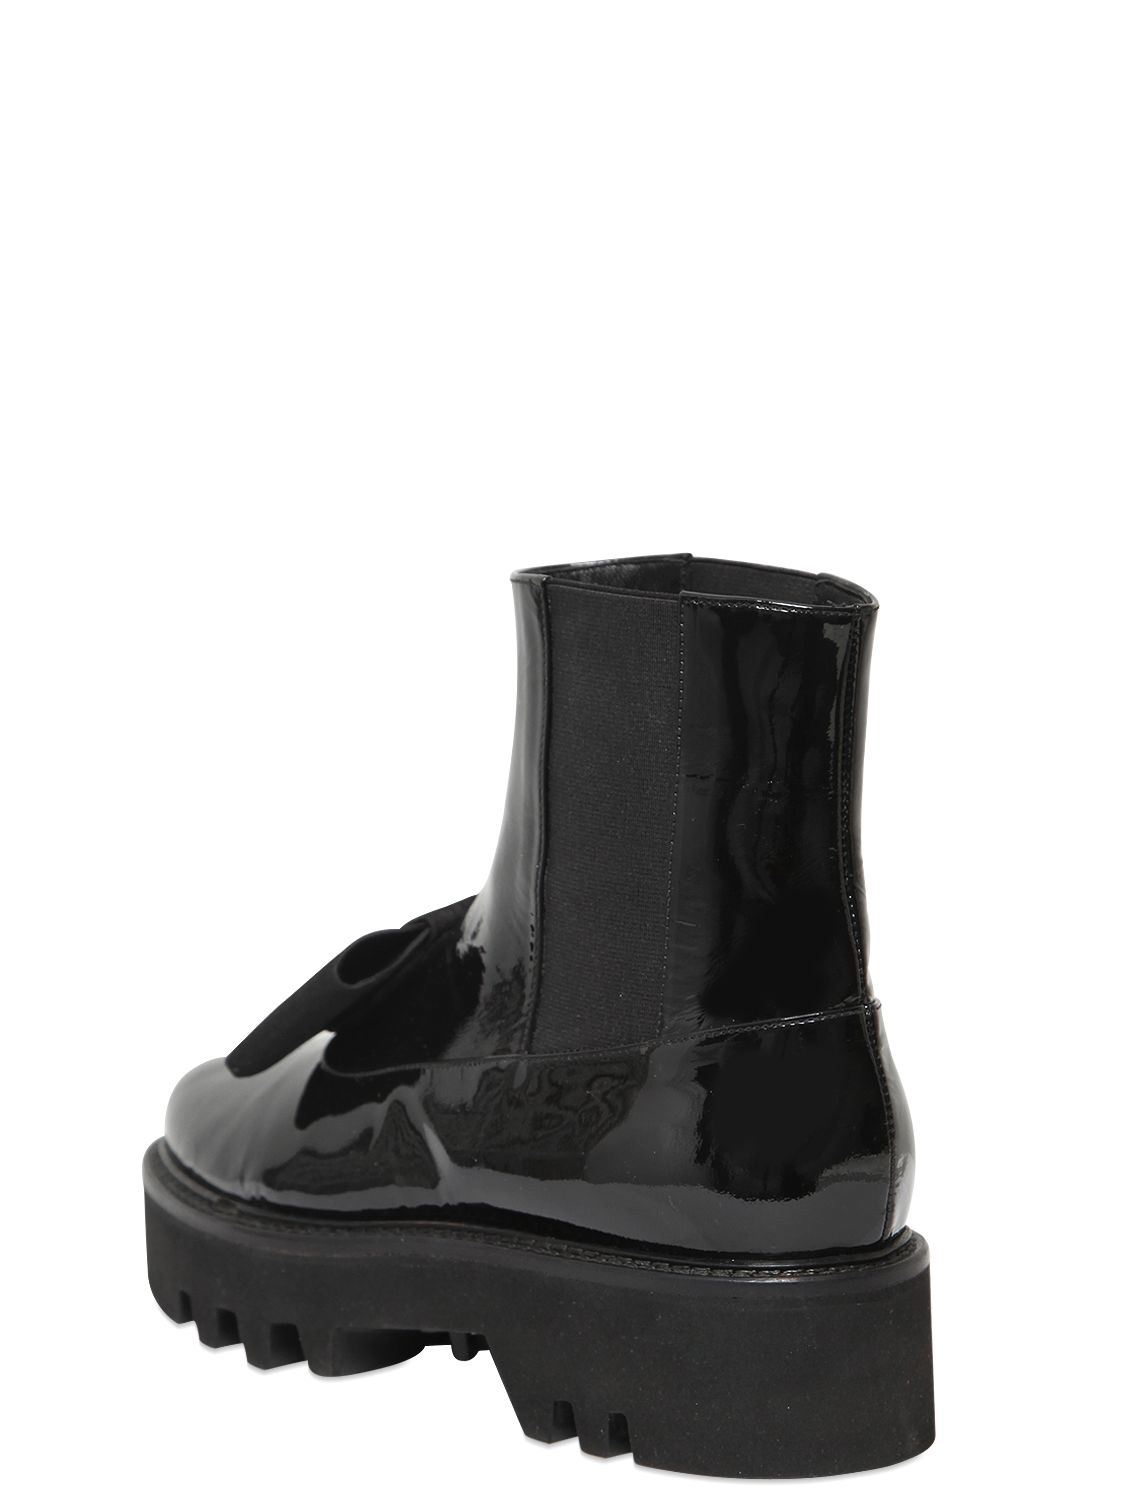 WALTER STEIGER Patent Leather Boots